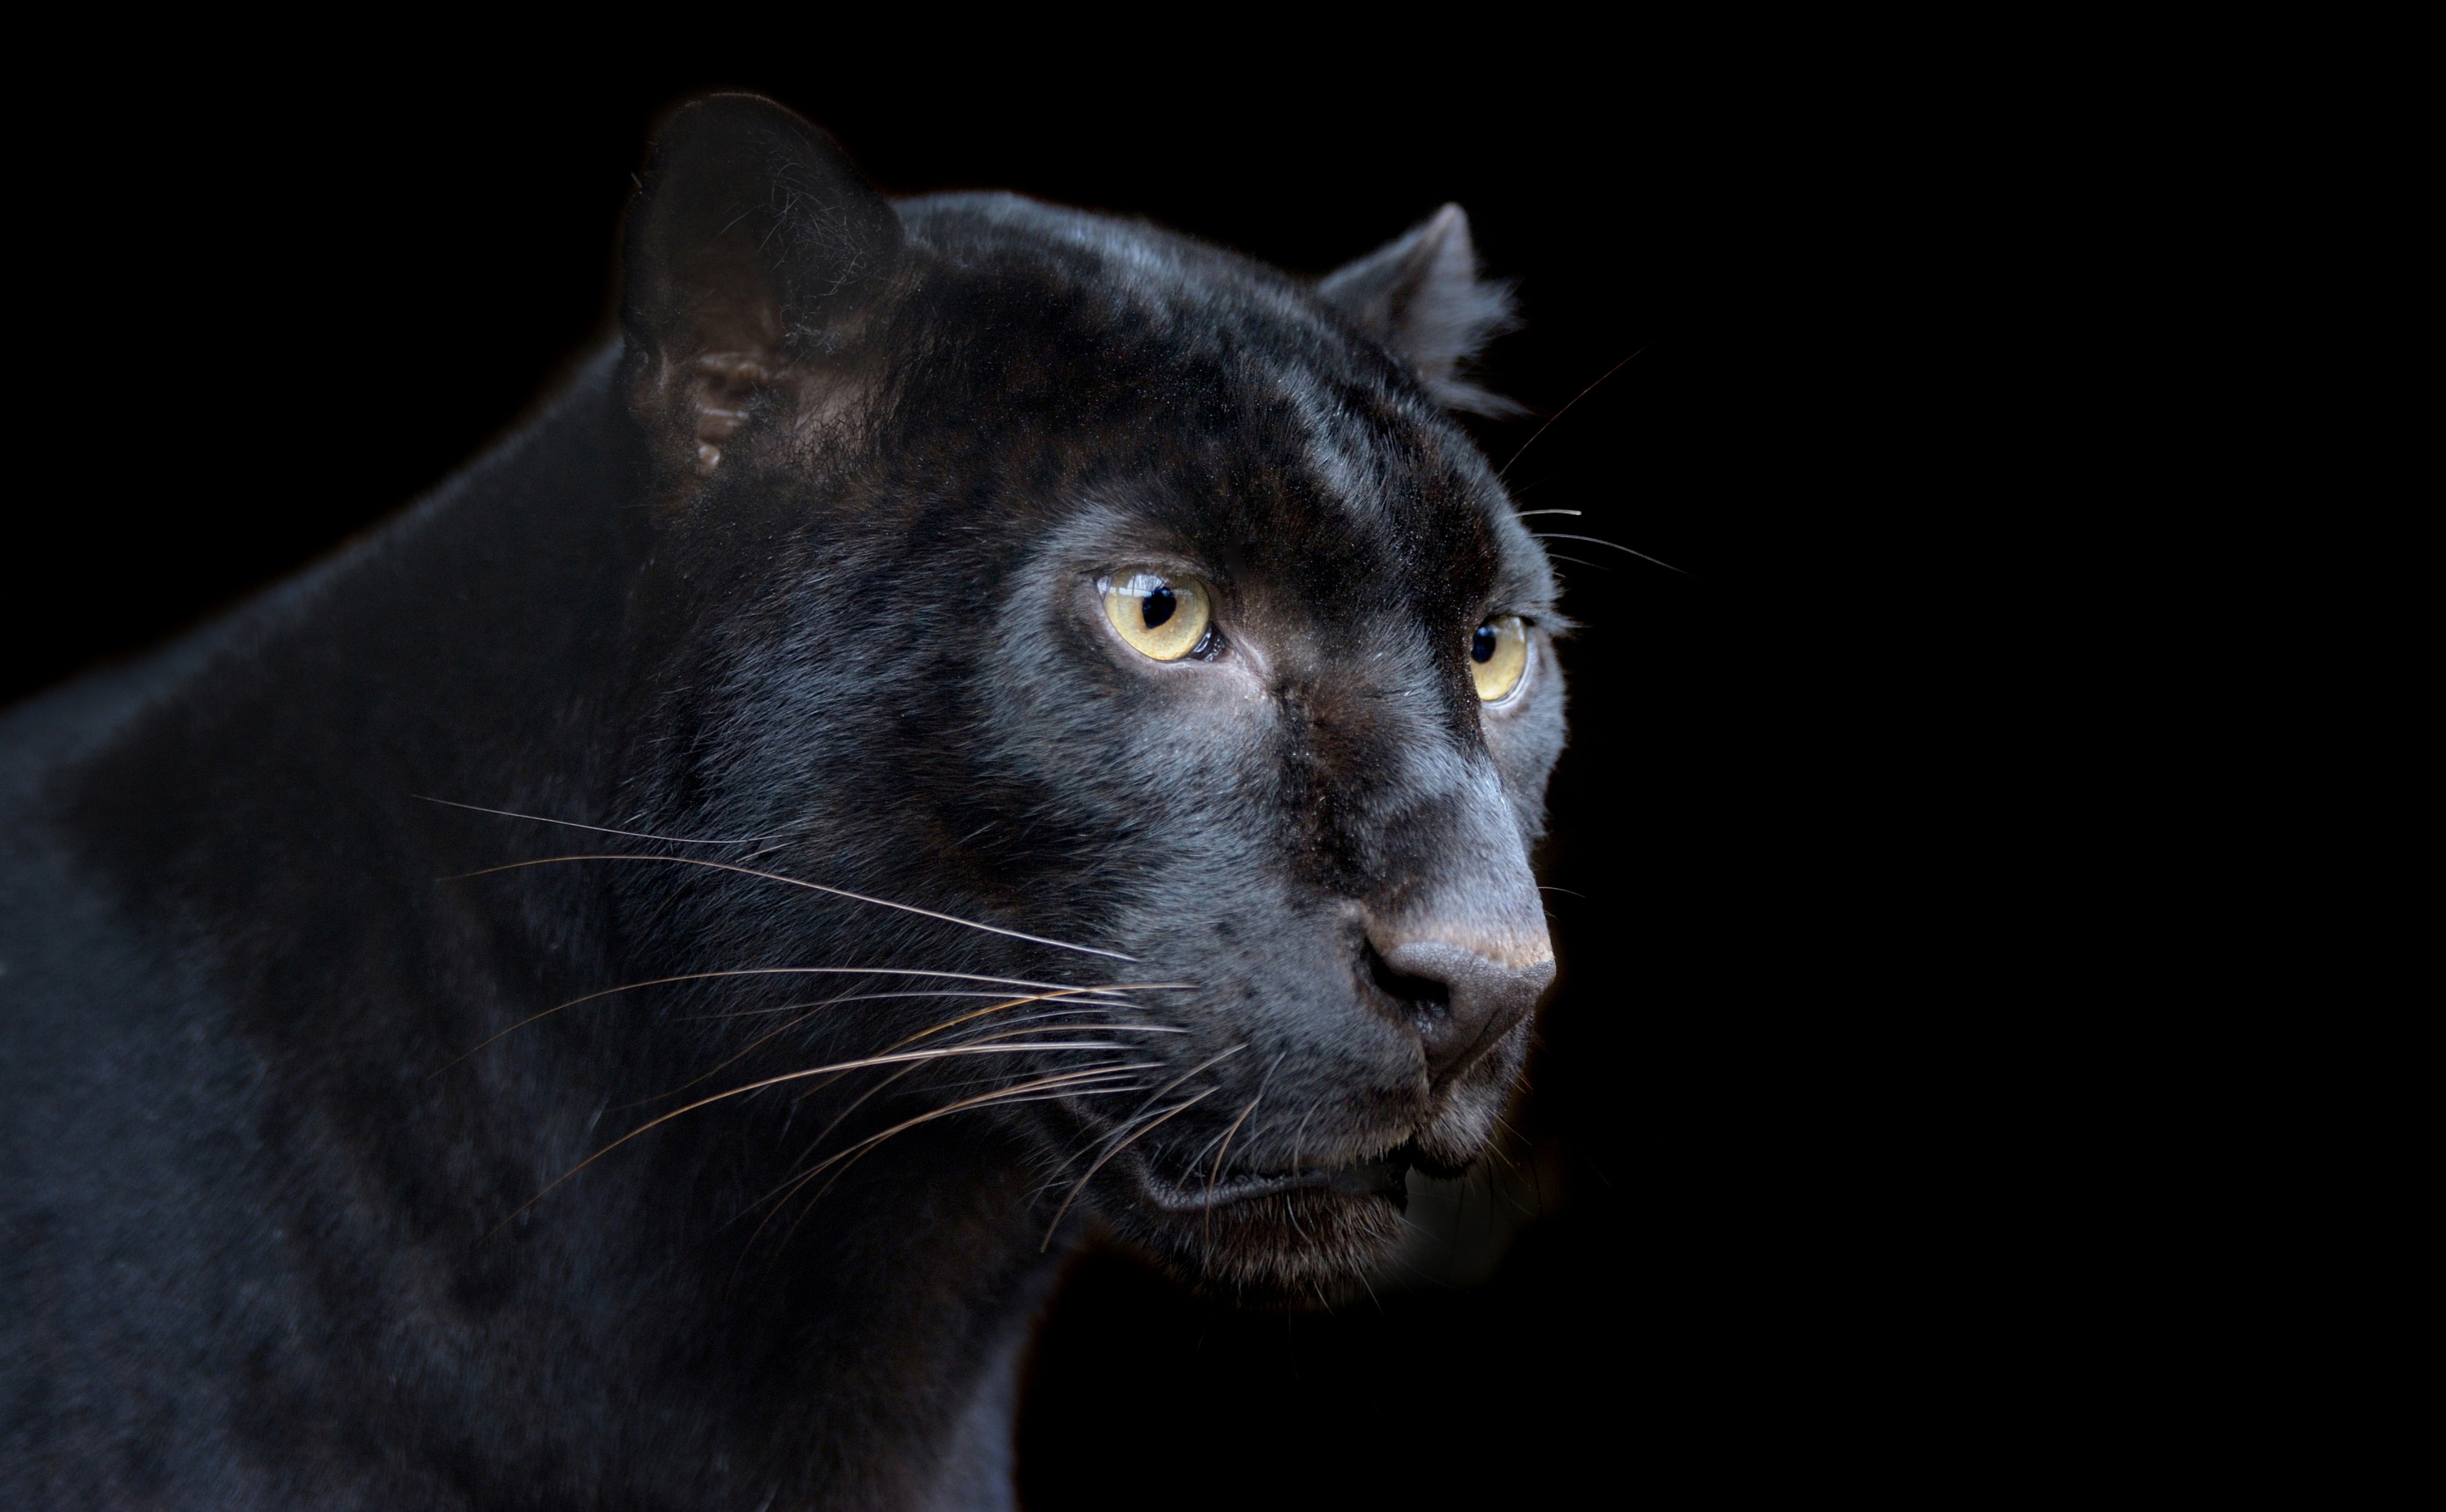 Panther leopard wolf black background wallpaper   ForWallpapercom 6470x4000